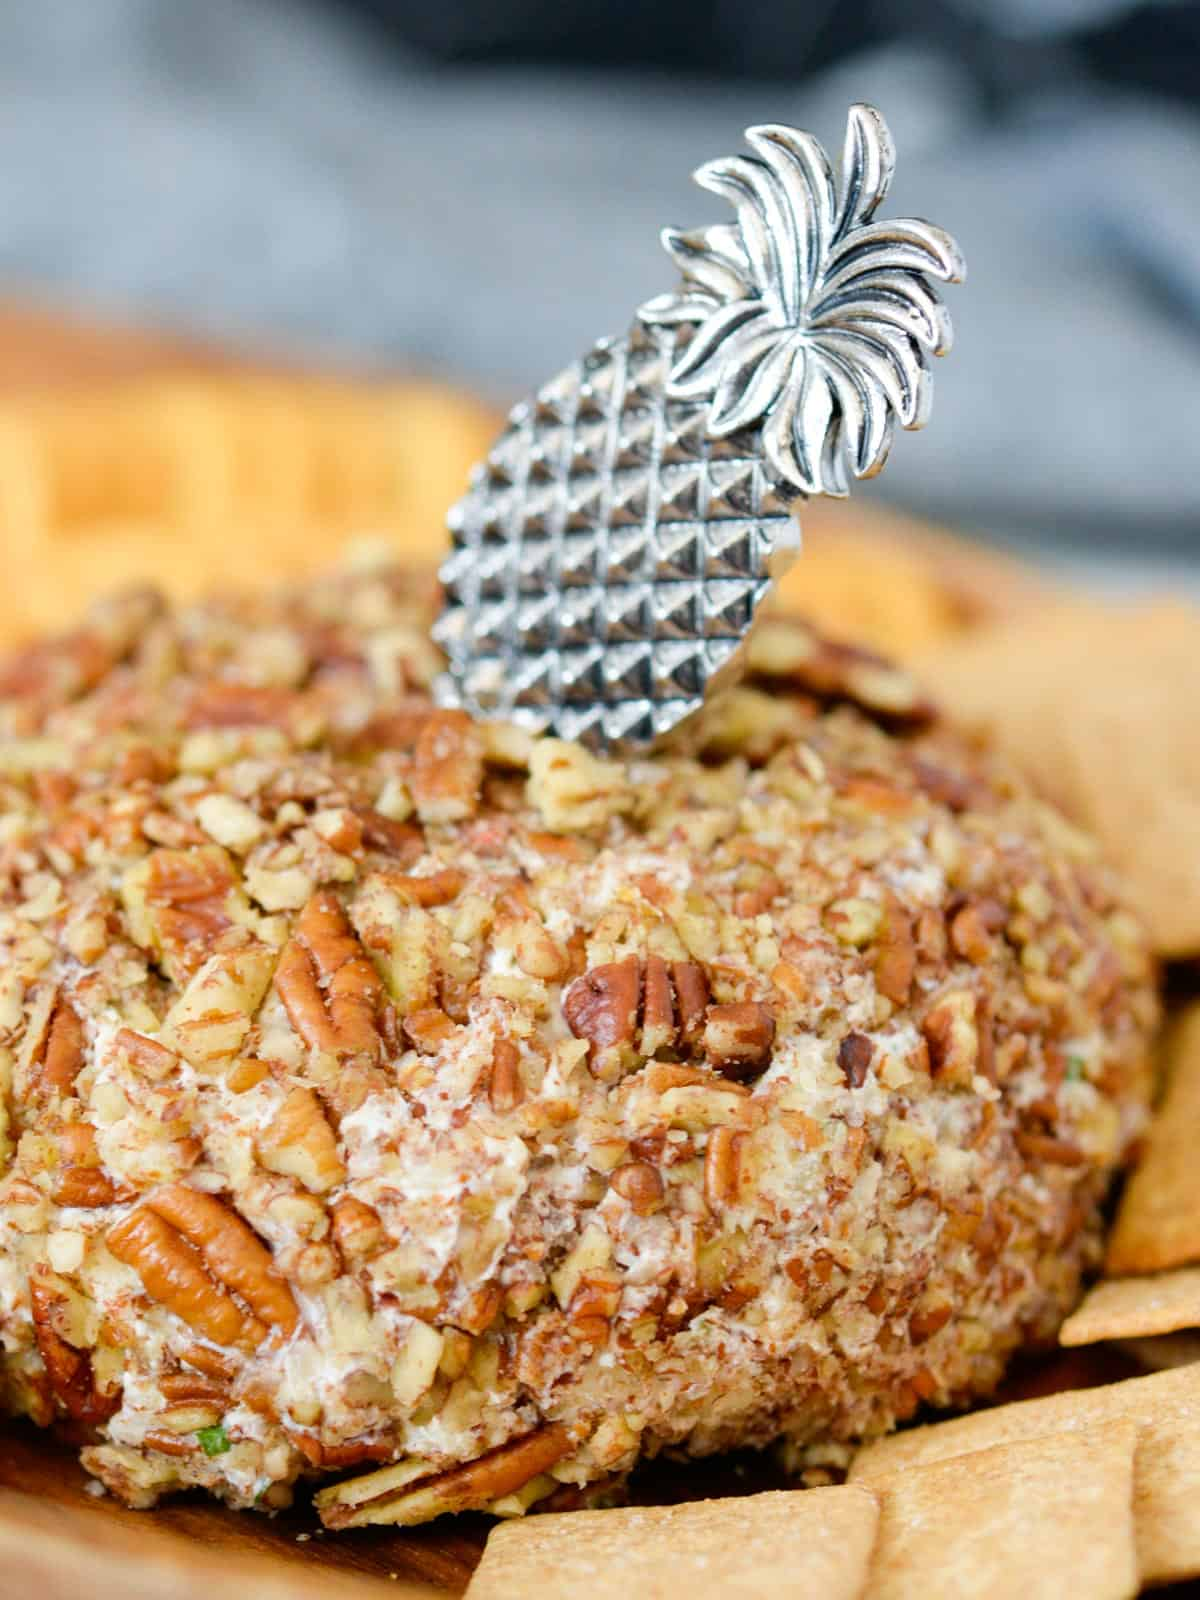 The original kraft pineapple cheeseball covered in pecans, served with ritz crackers